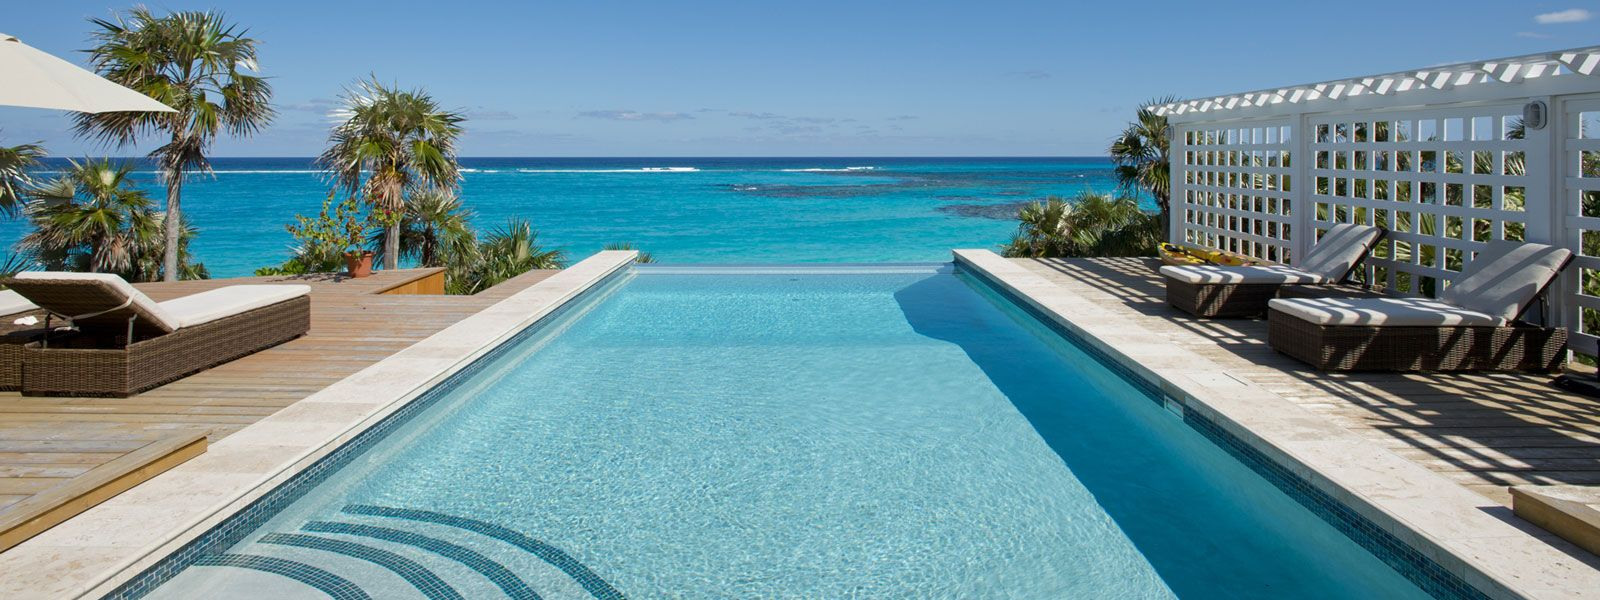 Bahamas oceanfront vacation home